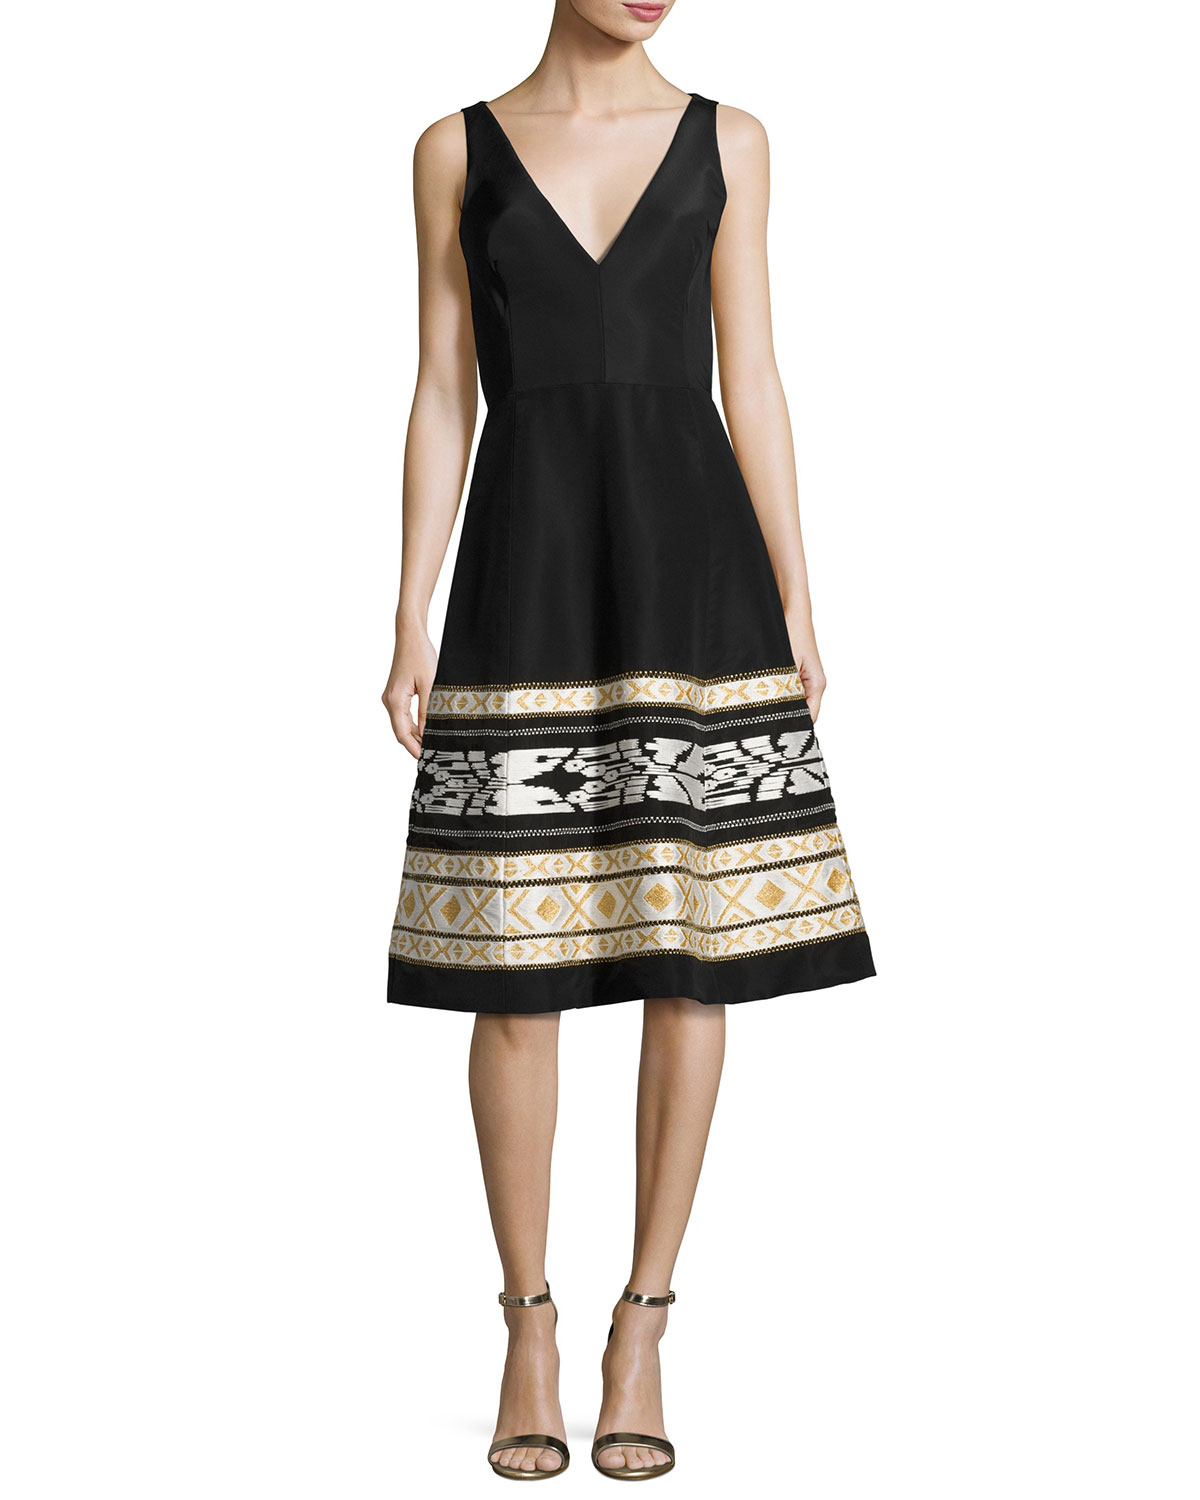 Ikat-Embroidered Faille Cocktail Dress, Black/White